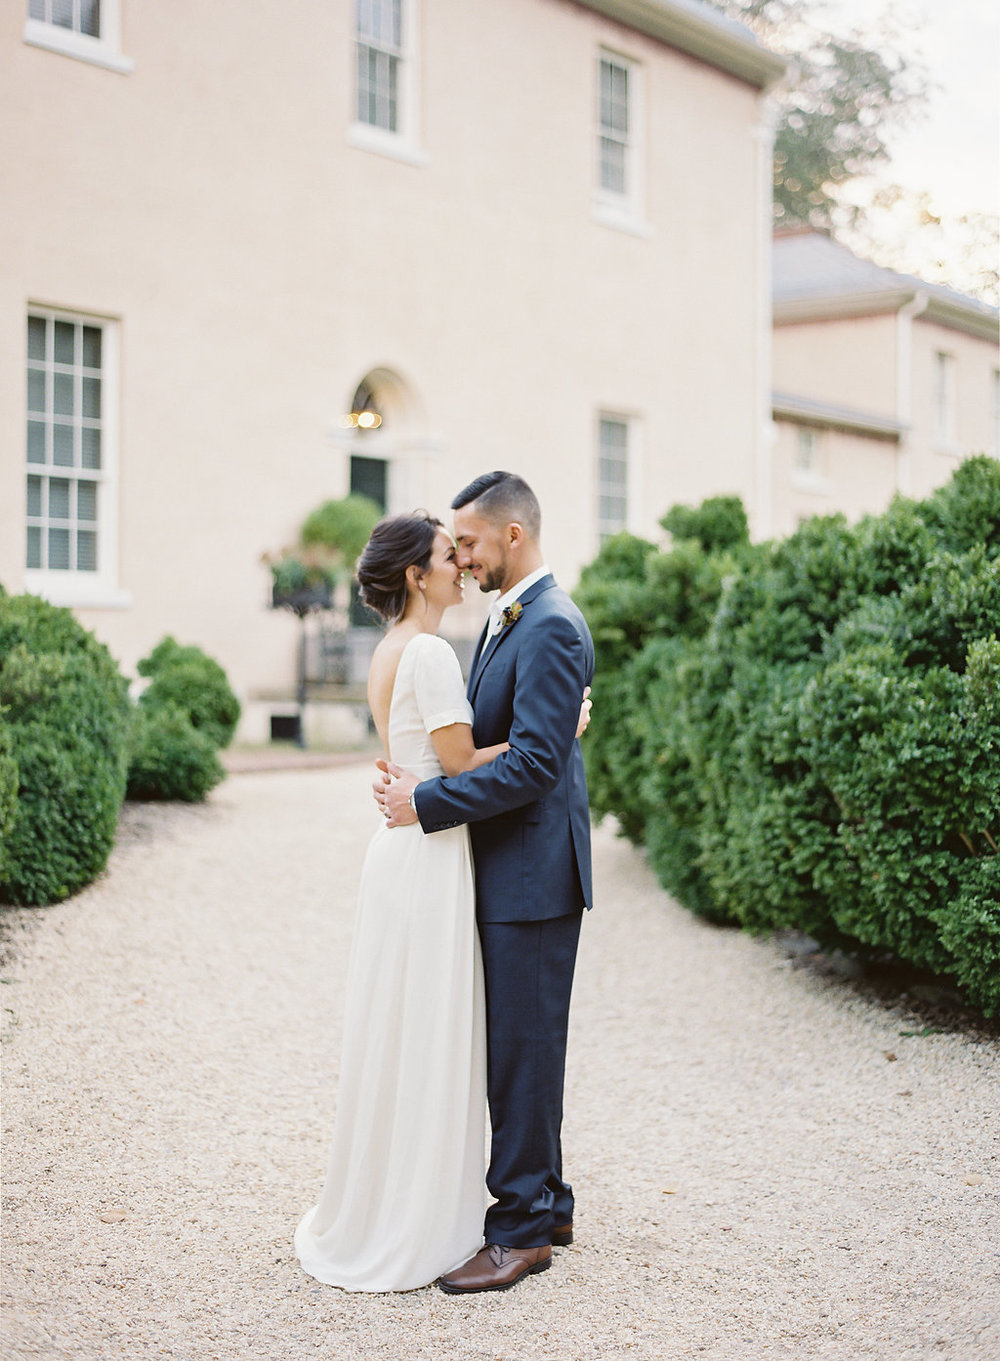 French Inspired Fall Wedding with Fine Art Destination Wedding Planner East Made Event Company and DC Film Photographer Vicki Grafton Photography at Tudor Place in Washington DC-115.jpg